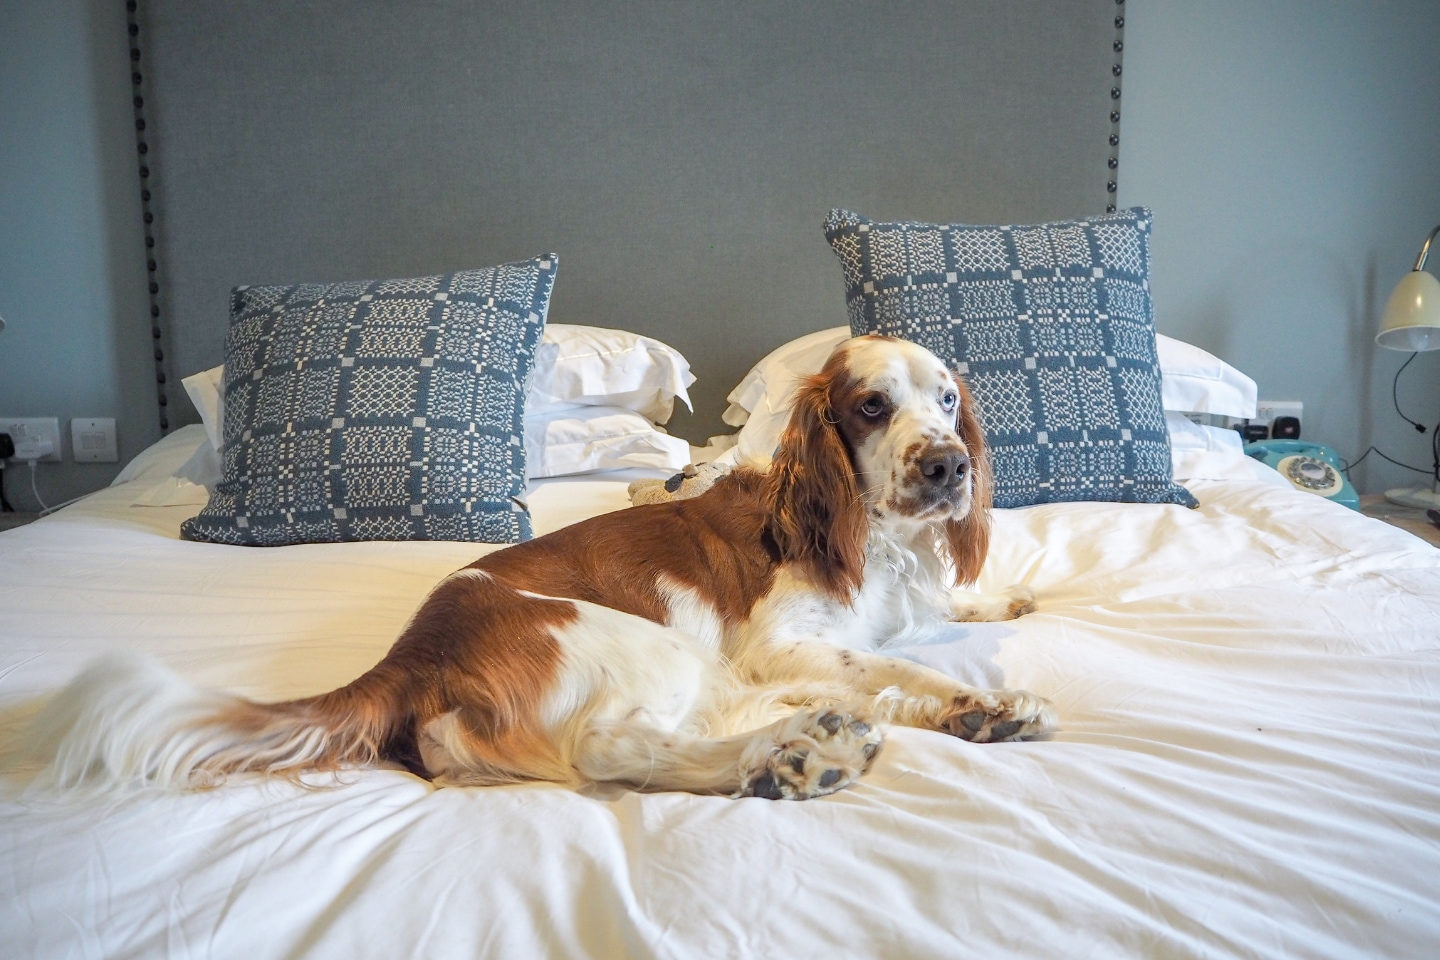 The Fish Hotel, Dog Friendly Hotel, Dog Friendly Travel, Cotswolds, Cotswolds Hotel, It's A Danielle Life, Travel Blog, Hotel Review, Falcon Explores, UK Hotel, Staycation